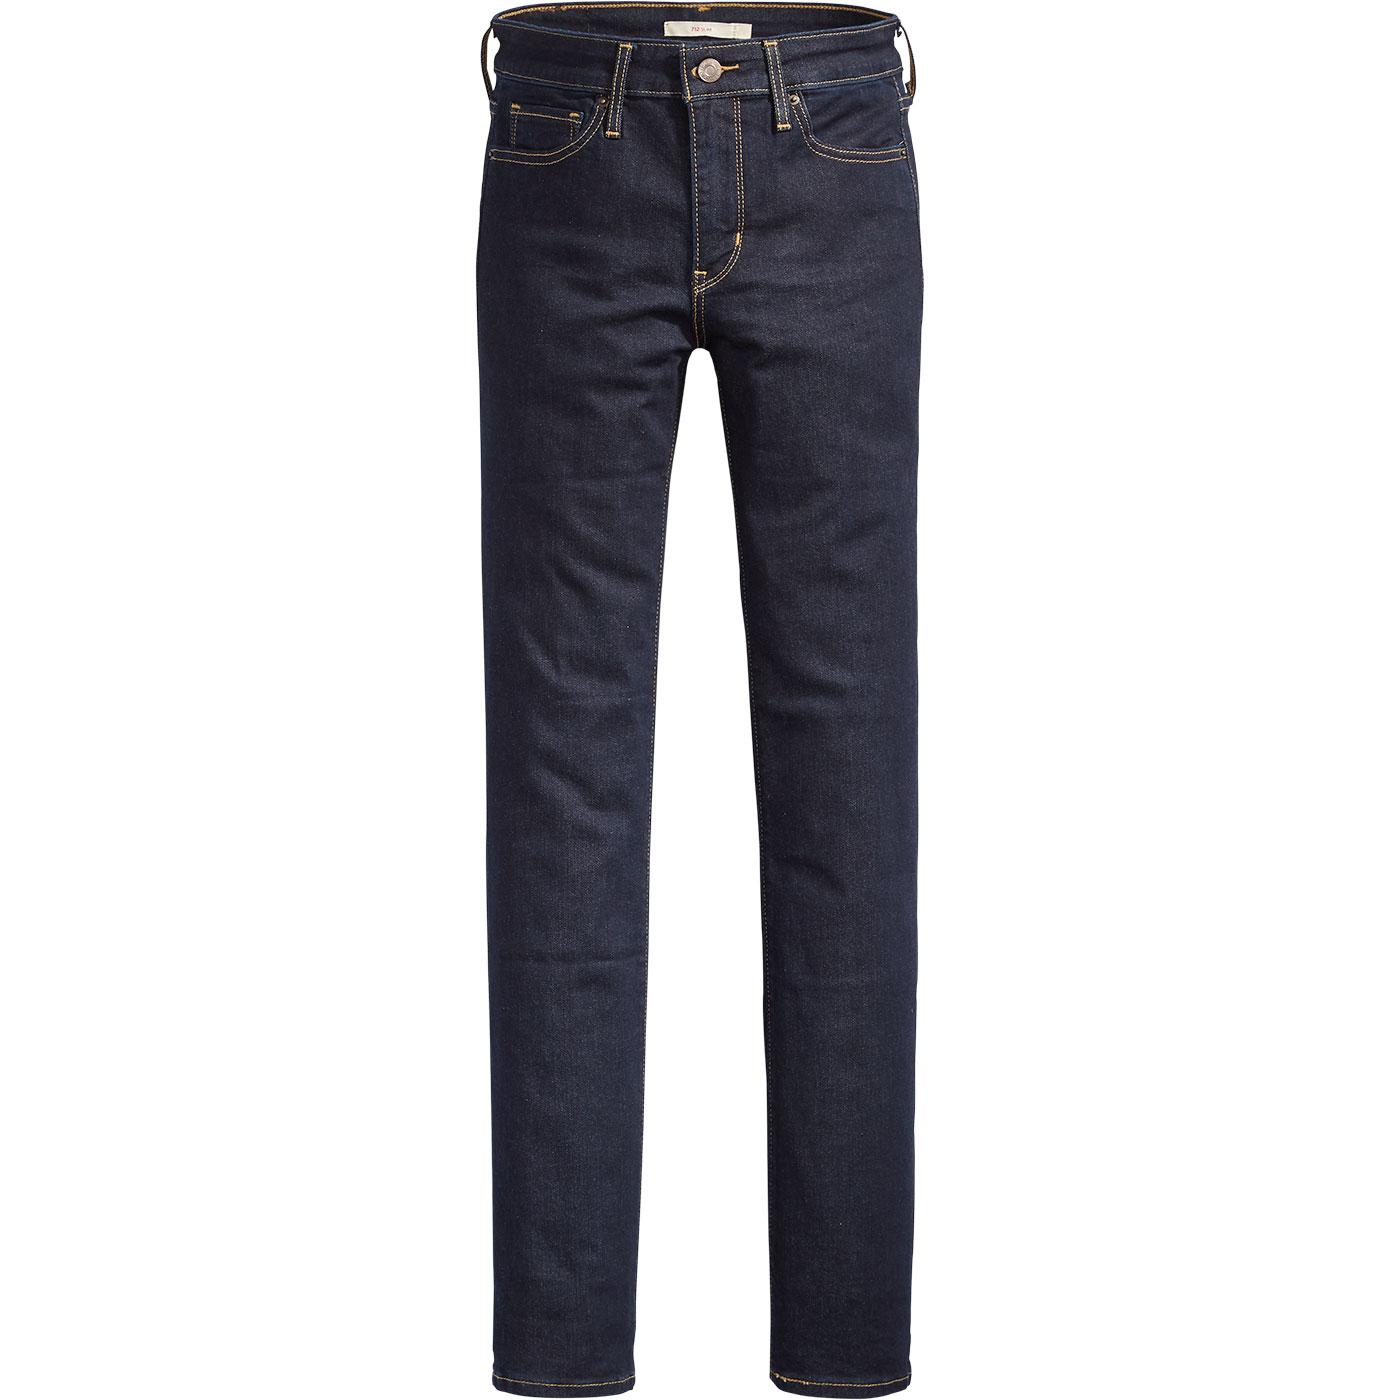 LEVI'S 712 Women's  Slim Jeans - To The Nine